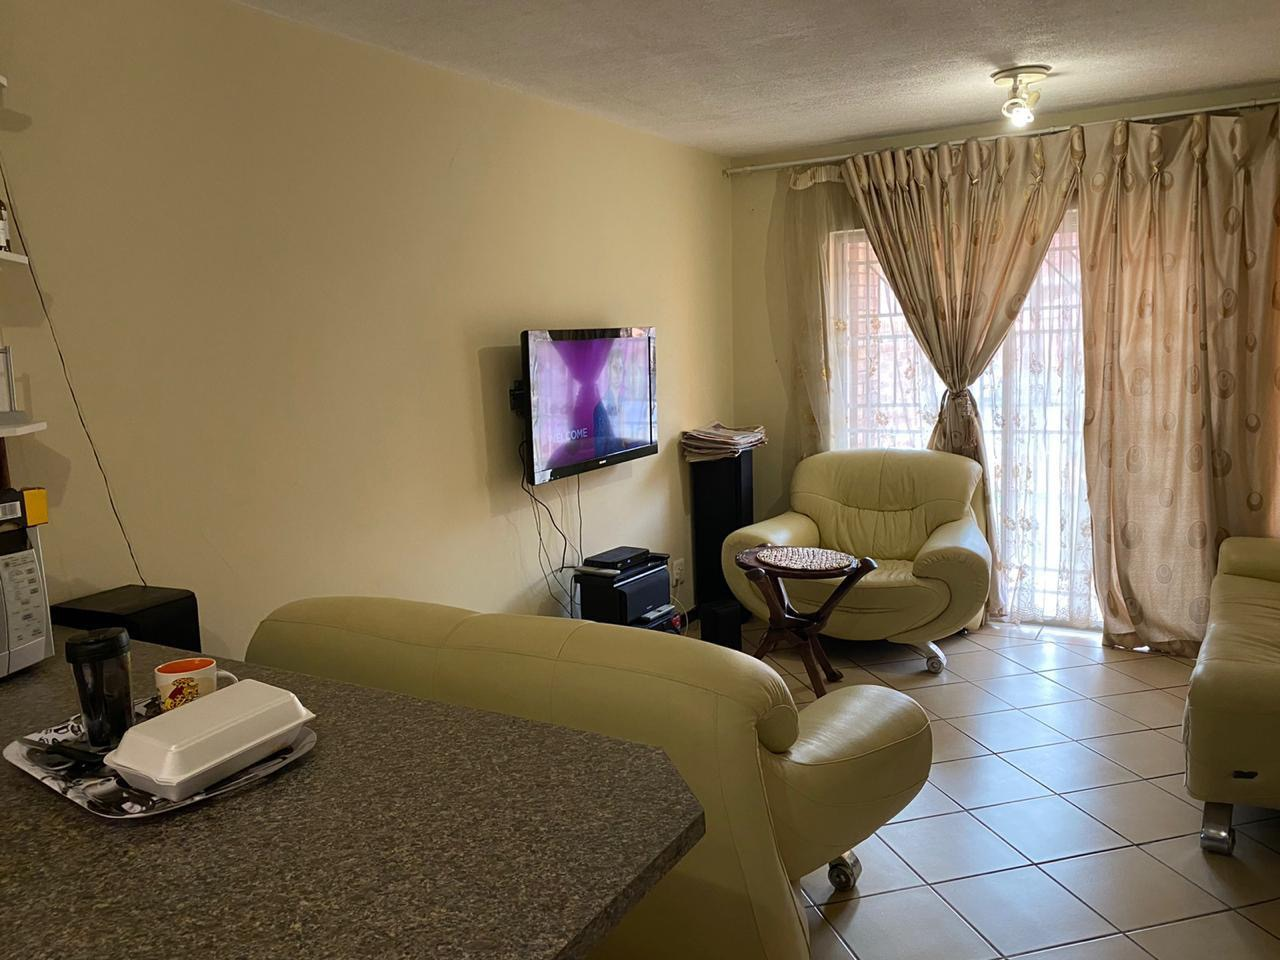 2 Bedroom Apartment / Flat For Sale in Karenpark